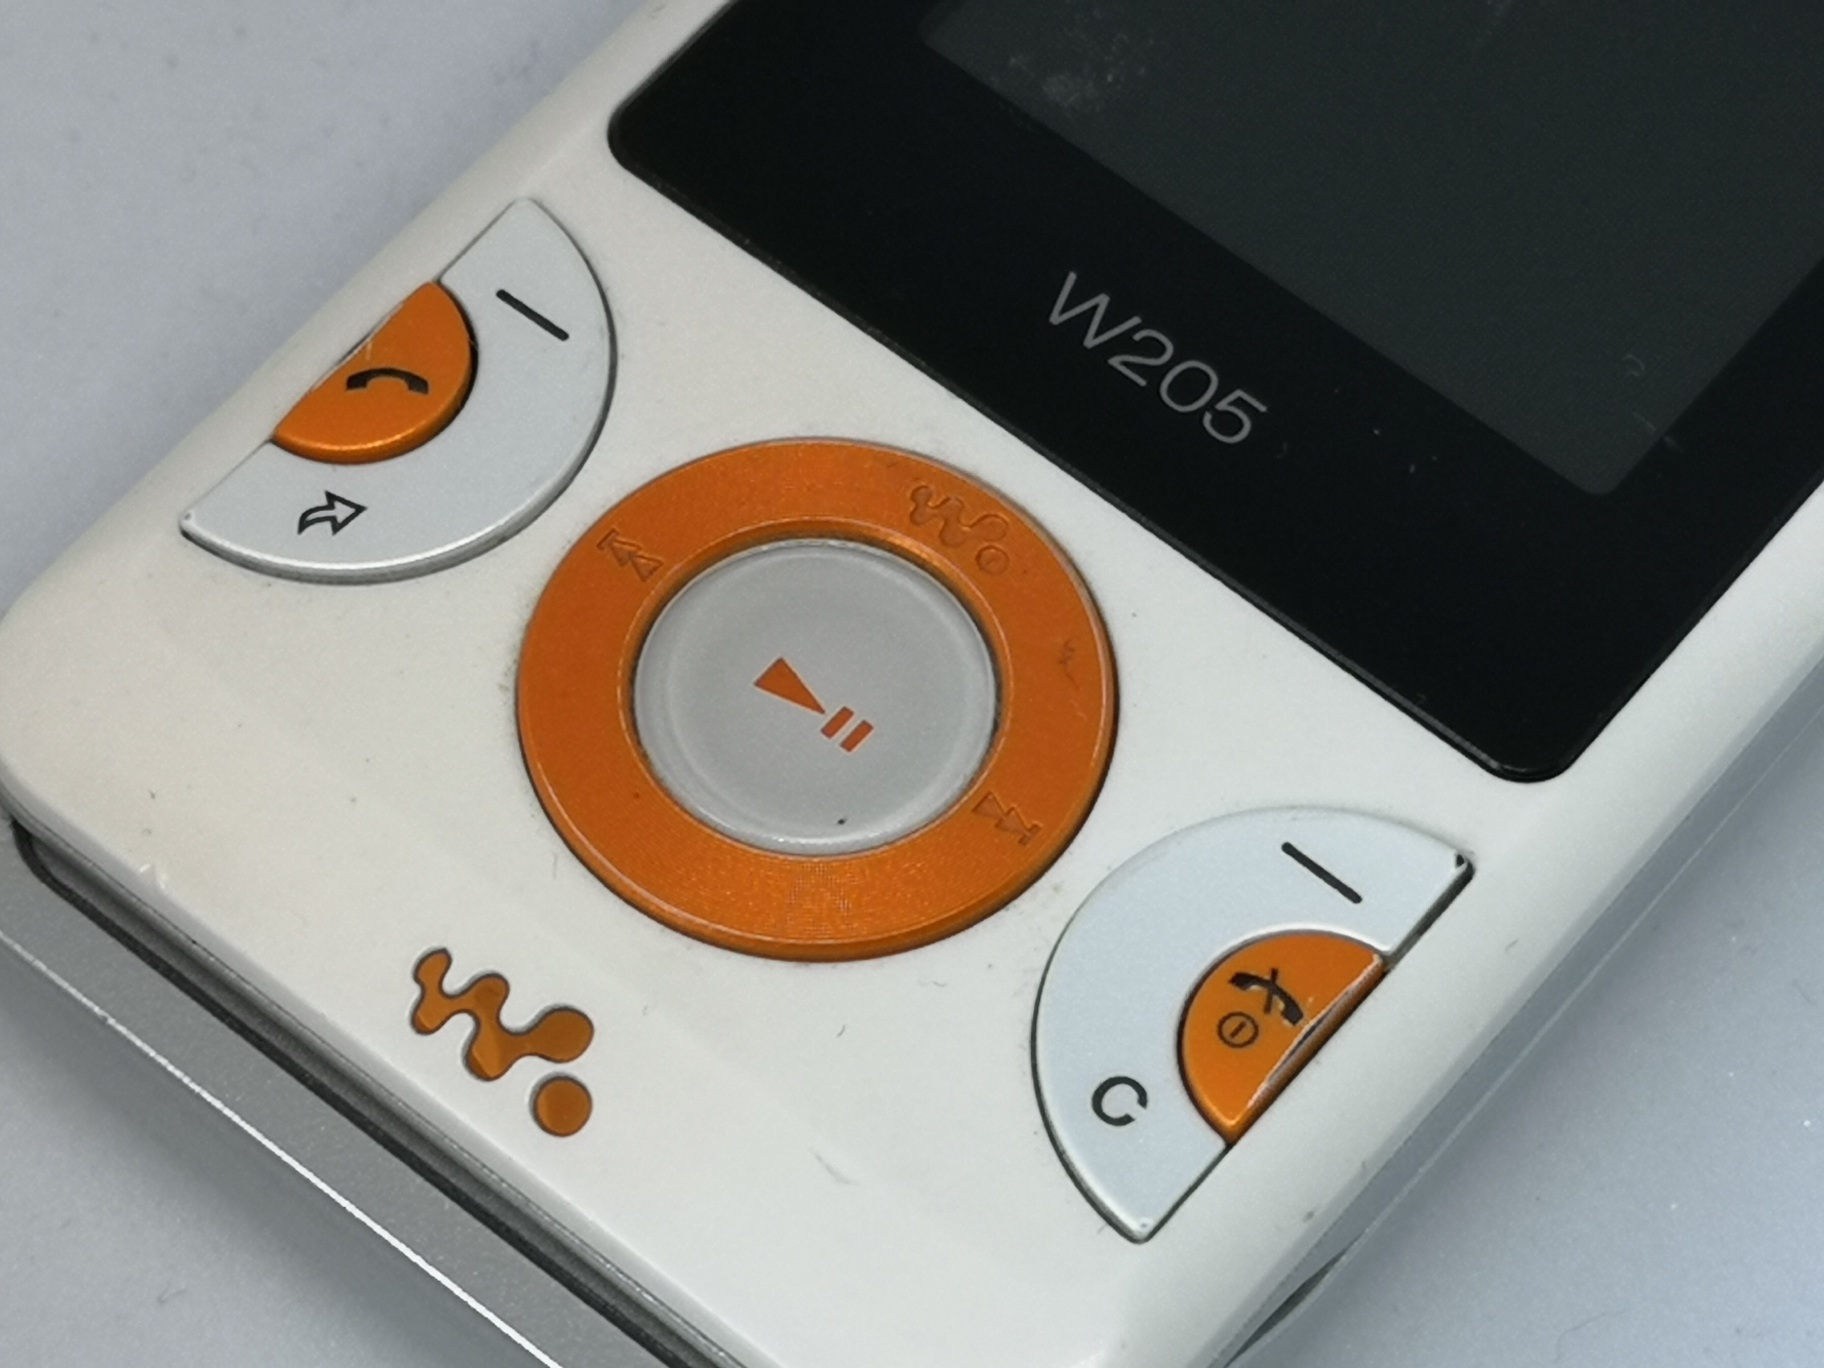 Sony Ericsson W205 Review - Historic Budget Walkman Mobile Phone